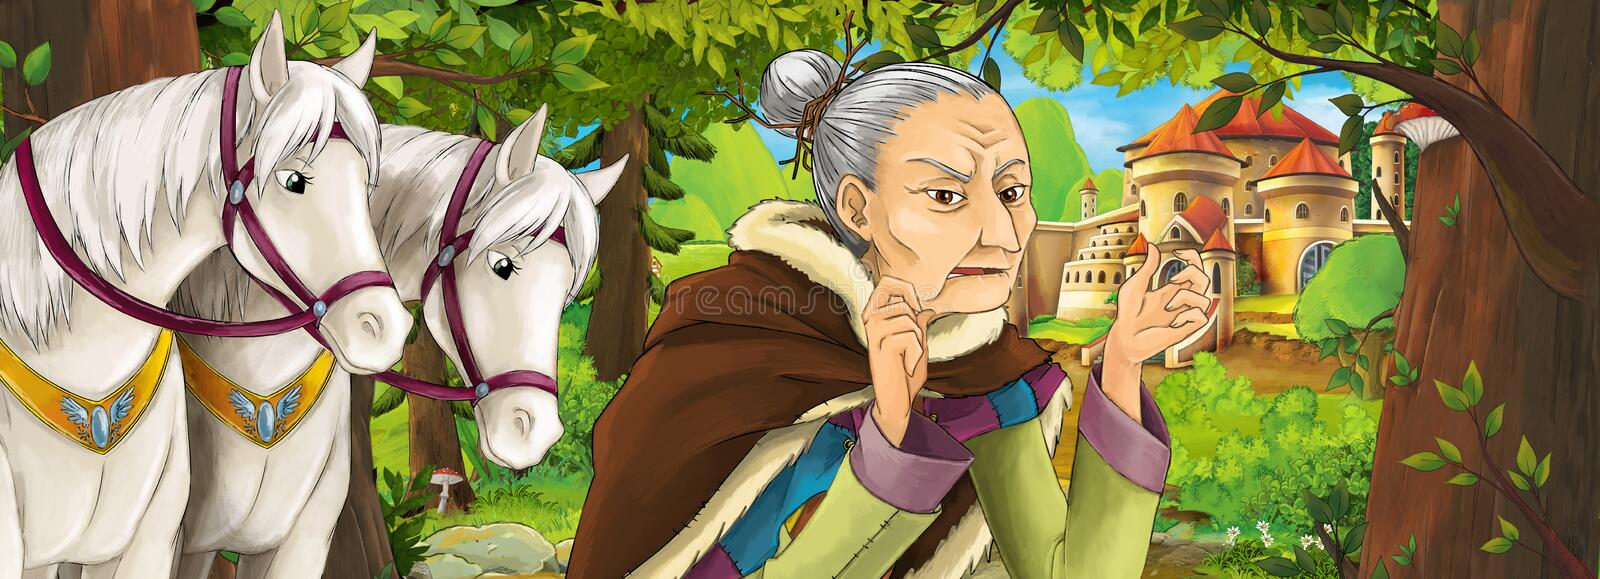 Cartoon nature scene with beautiful castle near the forest with old woman witch sorceress royalty free illustration